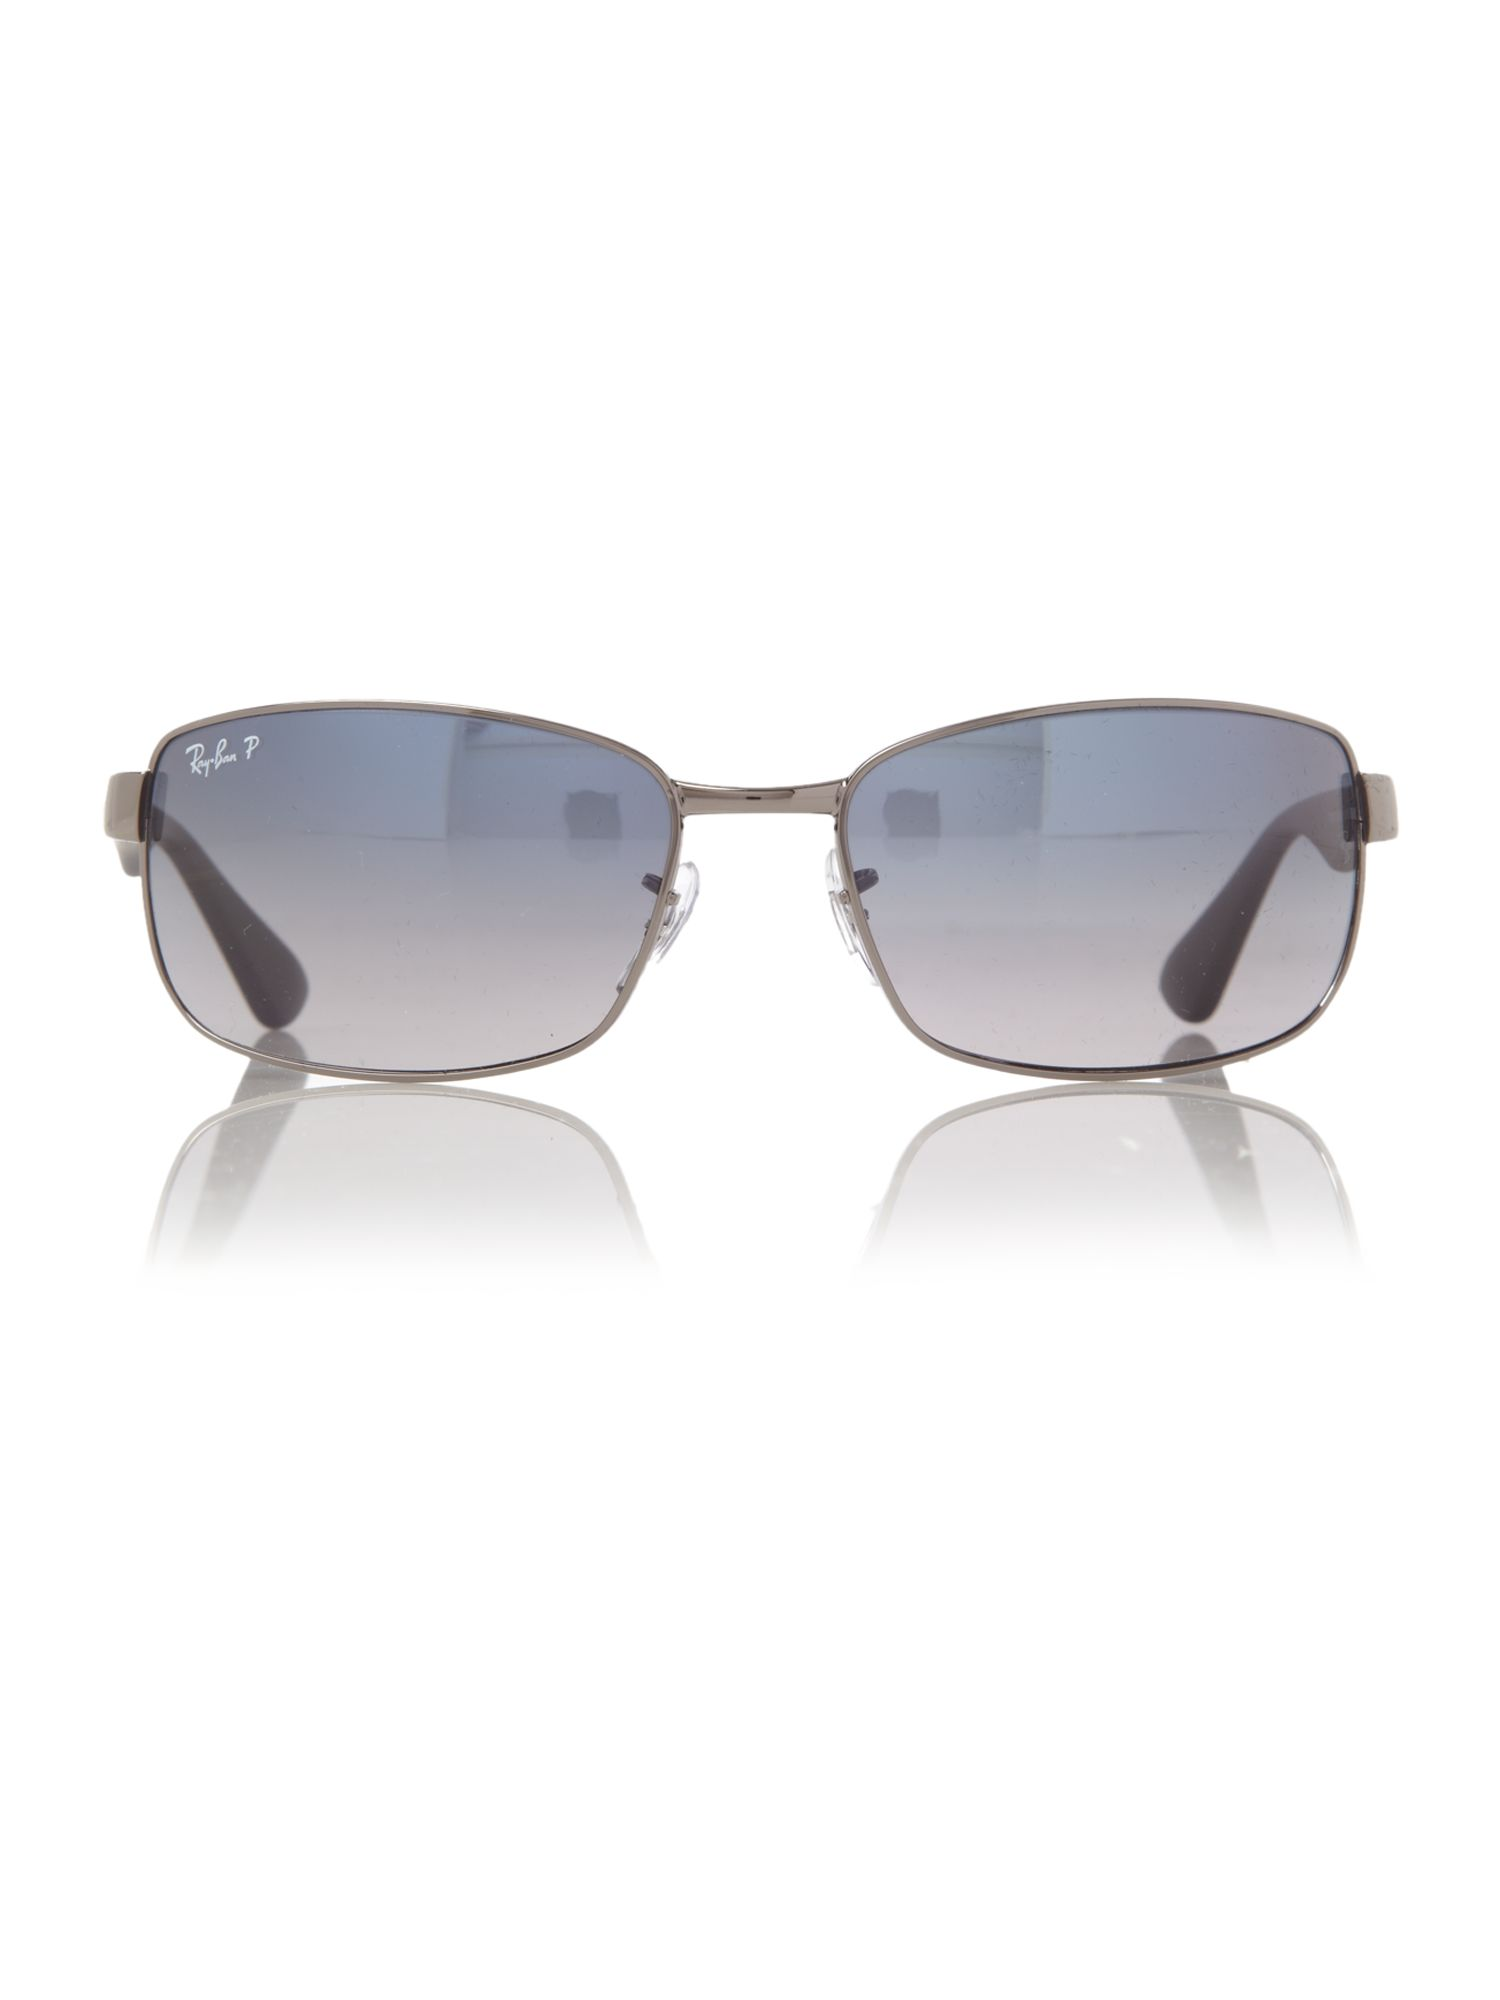 Mens RB3478 63 Rectangle Sunglasses